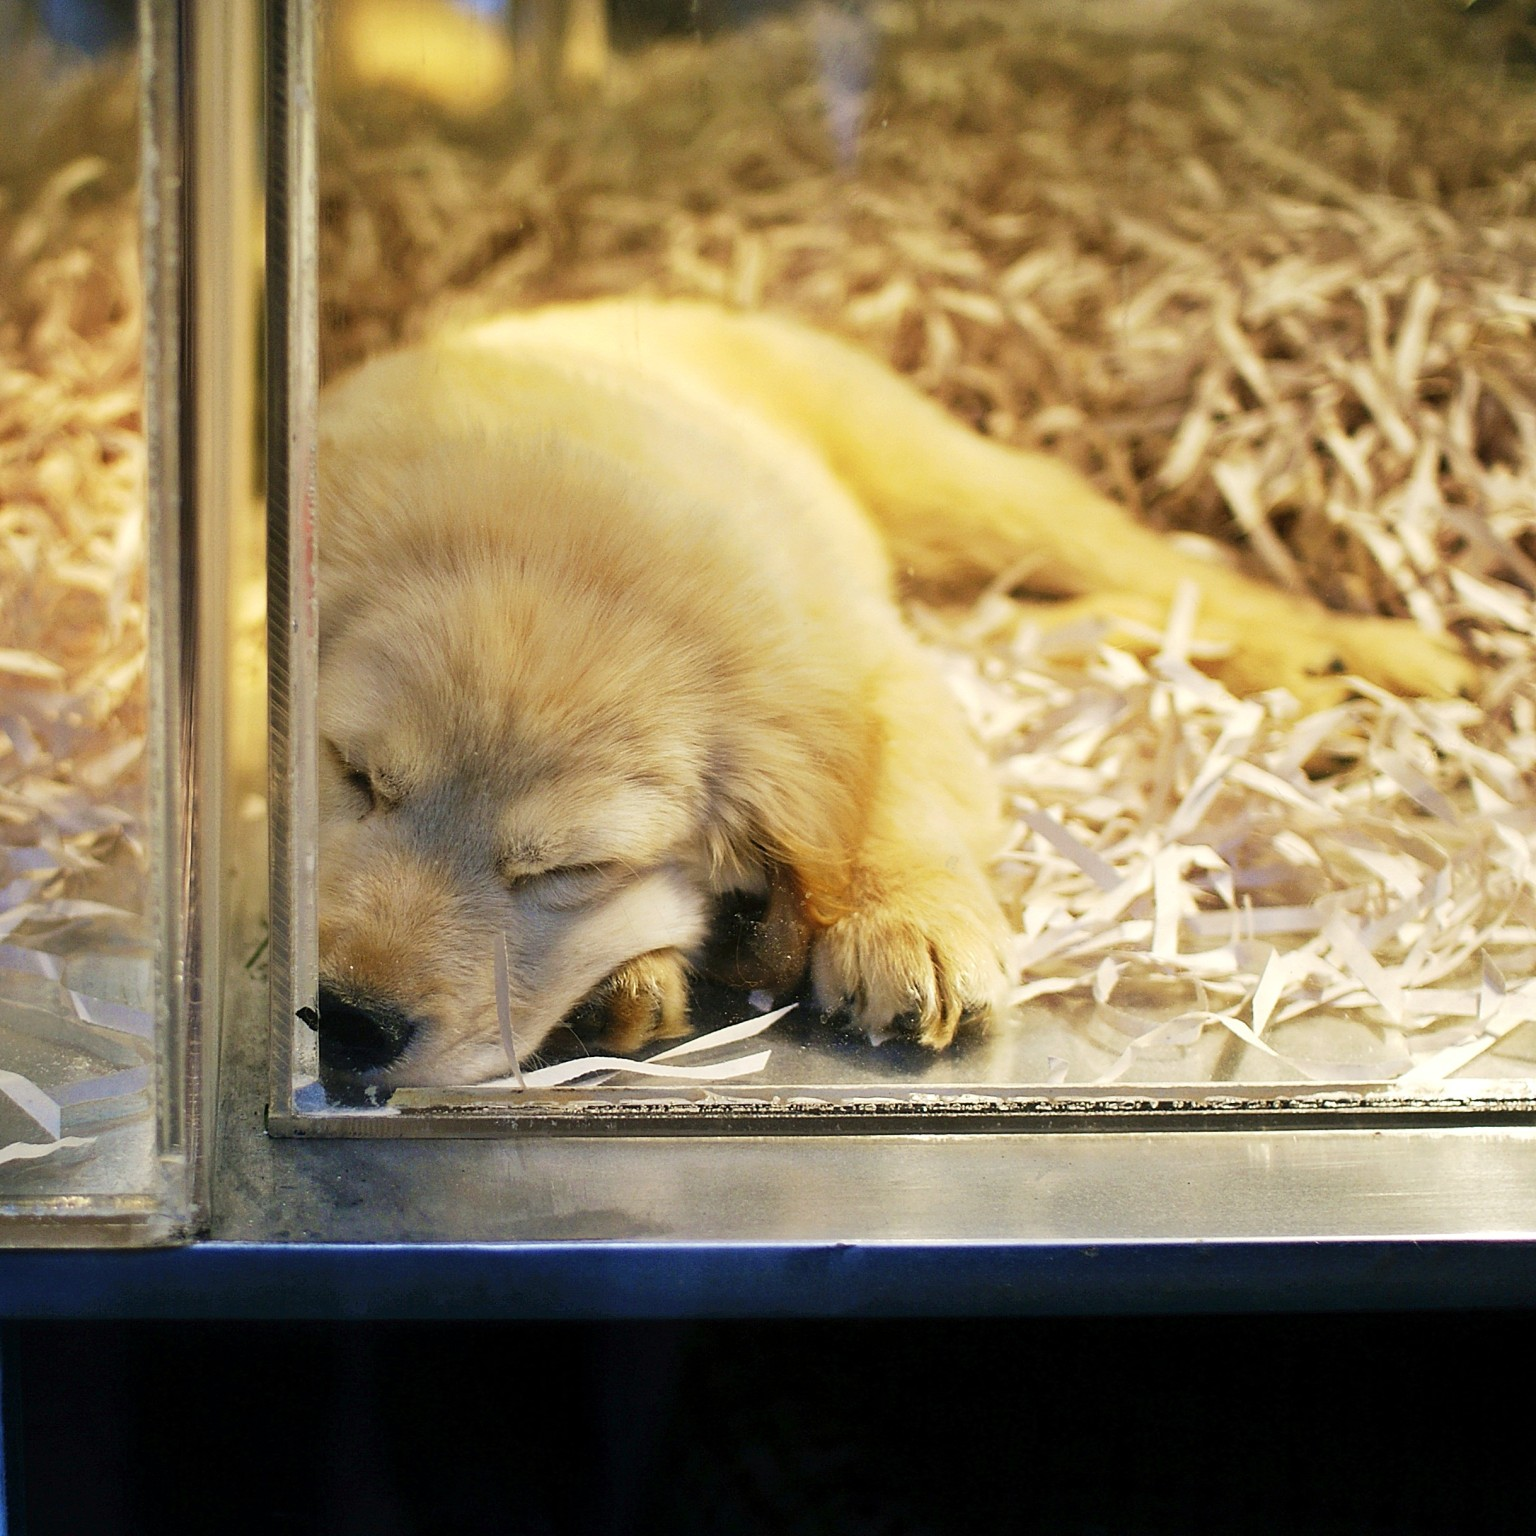 san diego bans pet store sales of dogs and cats in effort. Black Bedroom Furniture Sets. Home Design Ideas